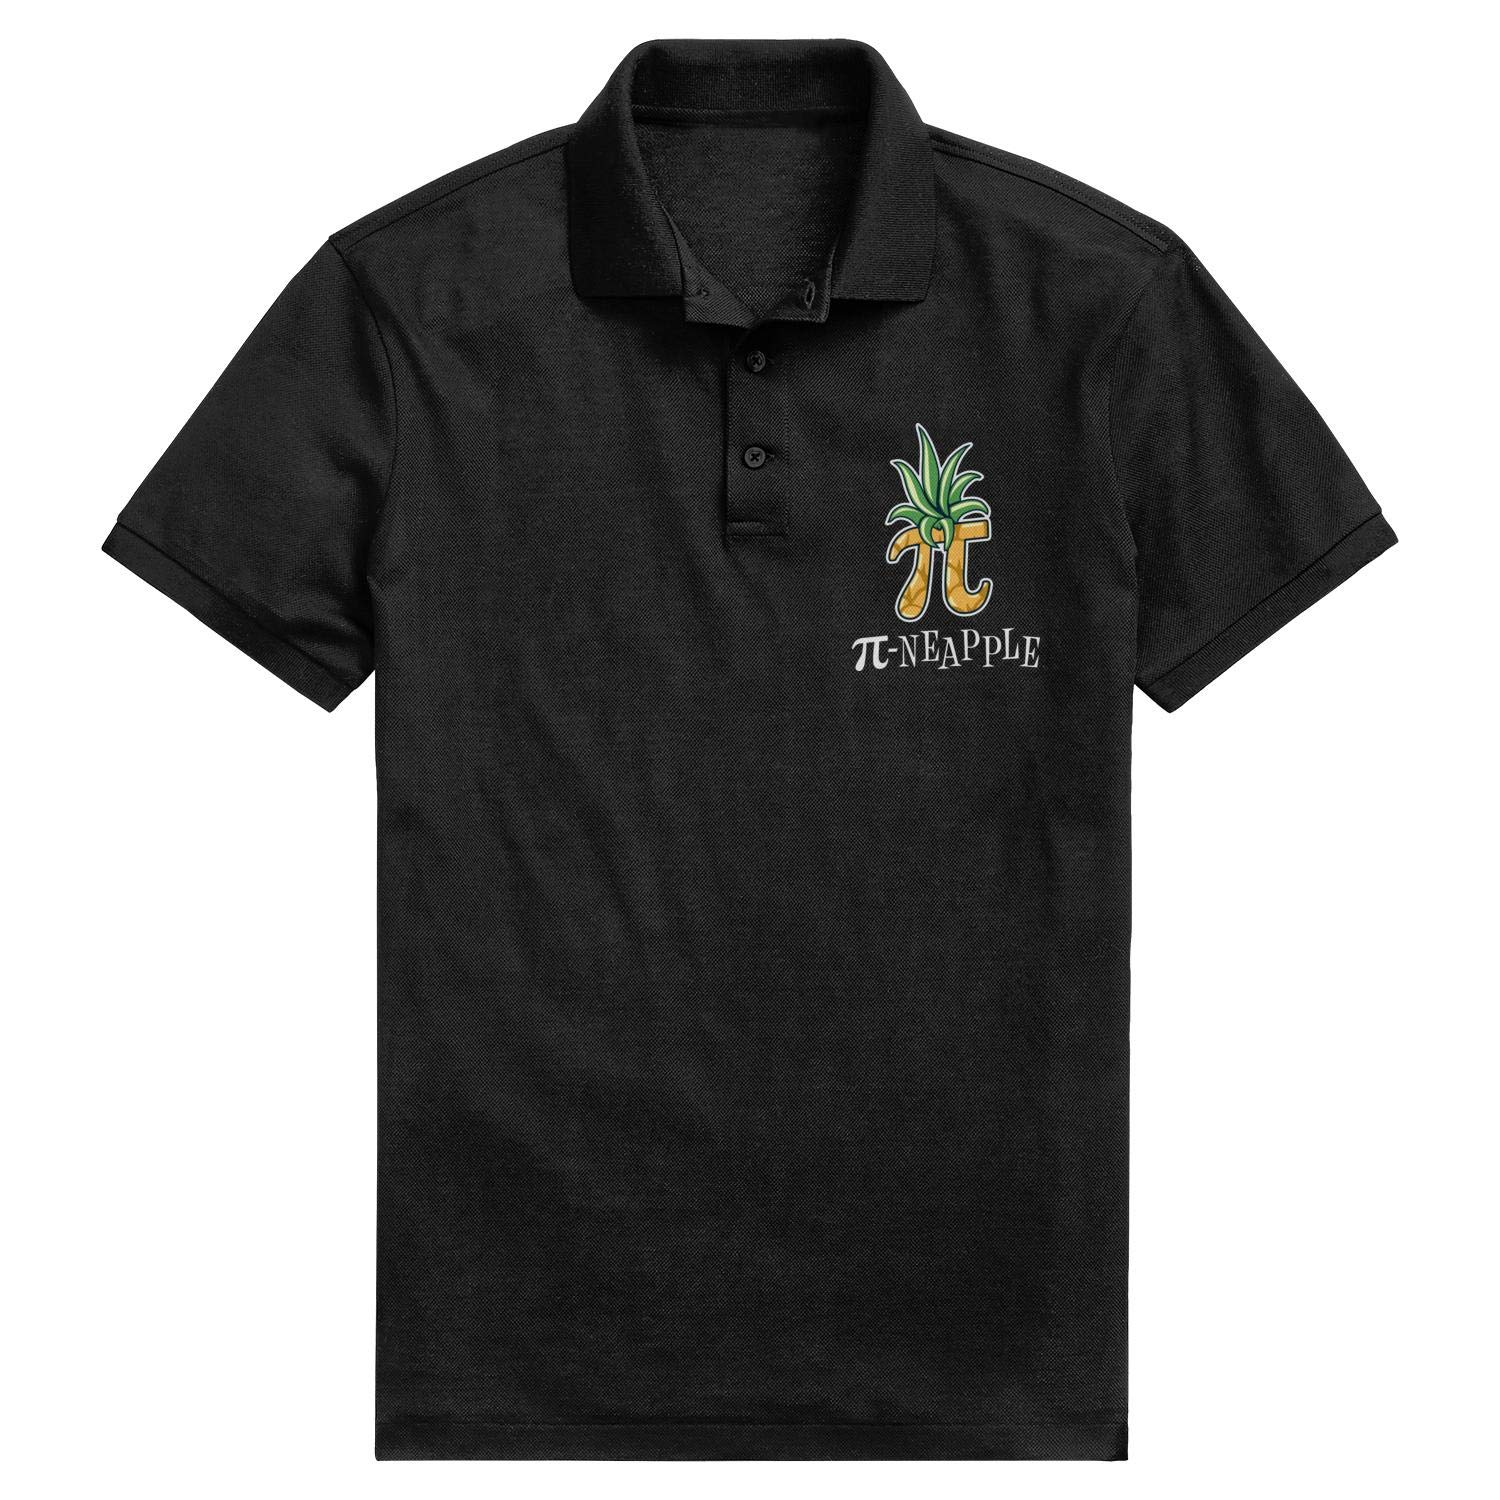 WYFEN Men Printed Polo Shirt Circumference Day Pineapple Pi Day Popular Short Sleeve Tshirts